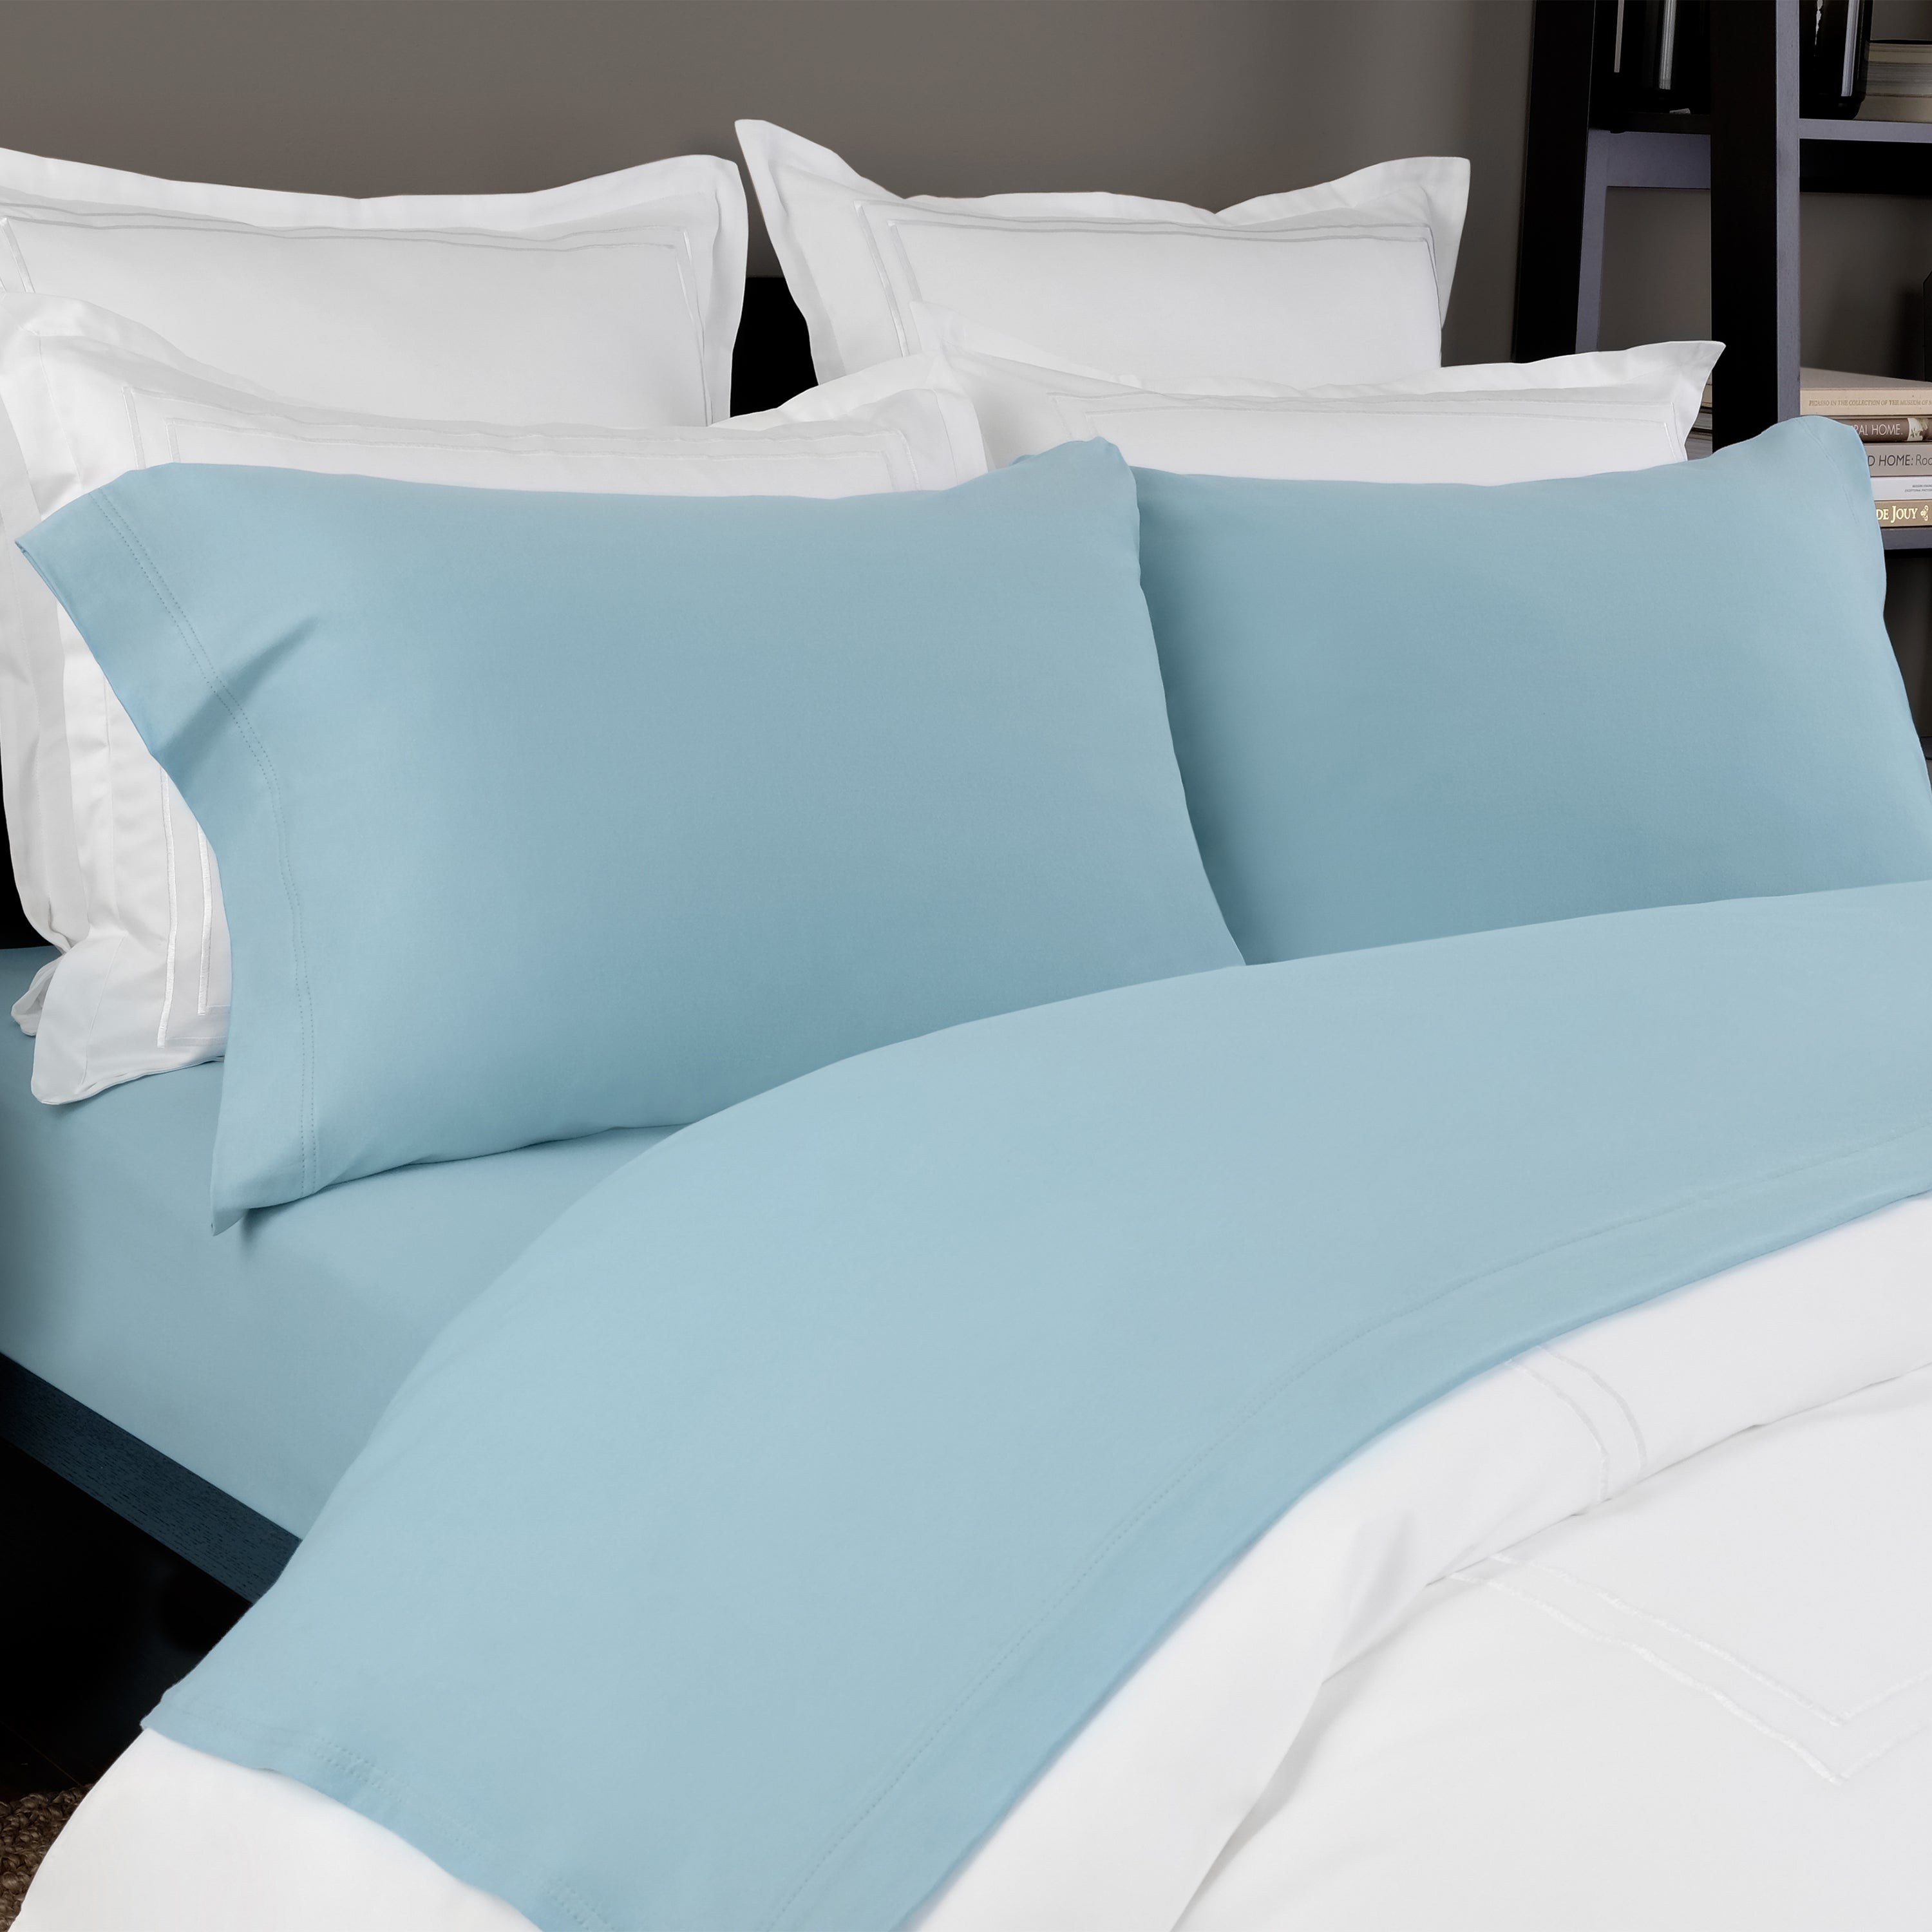 4572b7c38e Say Goodbye to Sleepless Nights, And Sleep on our 100% Cotton Jersey Linen,  Breathable, And Luxurious Jersey Knitted Sheet Set